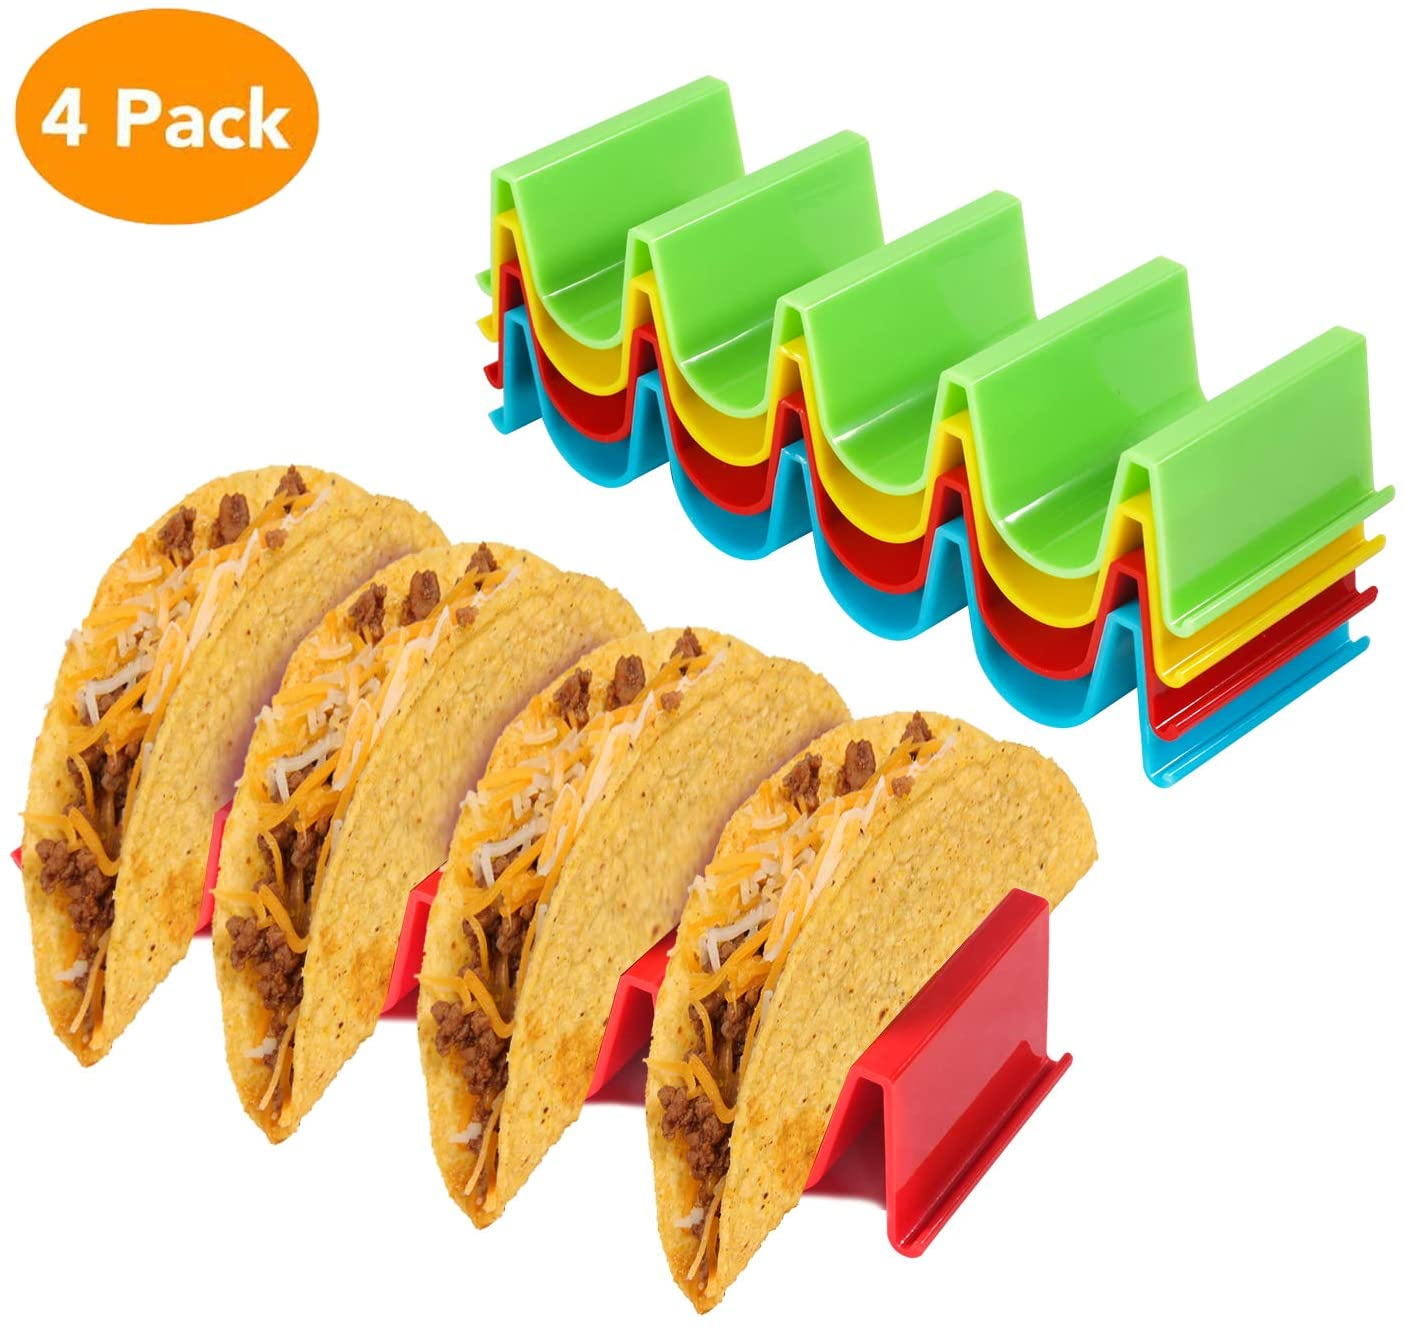 Taco Holder, Kmeivol Taco Holders, Colorful Taco Stand, Steady Support Taco Plates, Hard and Sturdy ABS Health Material Taco Shells, Dishwasher and Microwave Safe, Easy to Clean(4 Pack)